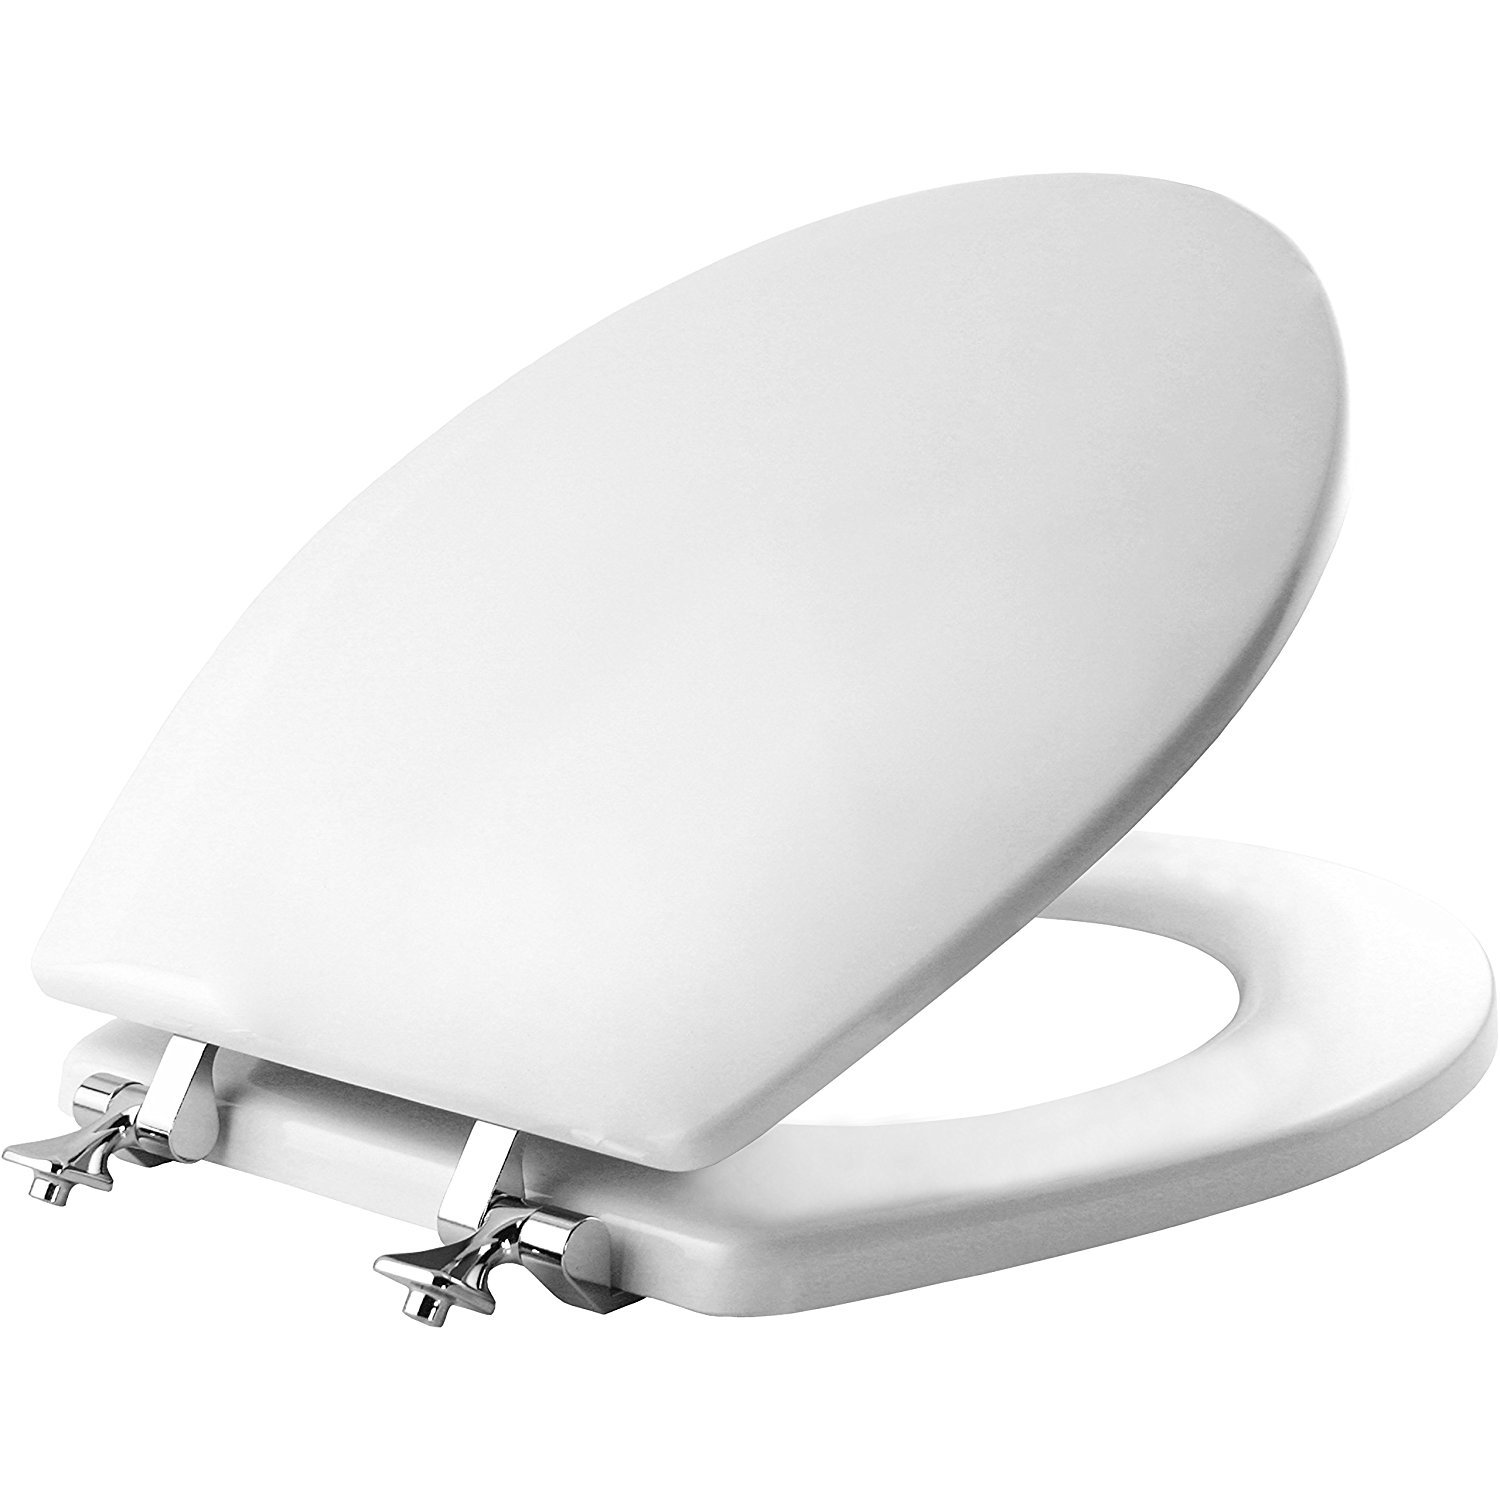 Mayfair Molded Wood Toilet Seat featuring STA-TITE Seat Fastening System & Chrome Hinges, Round, White, 44CP 000 by Mayfair